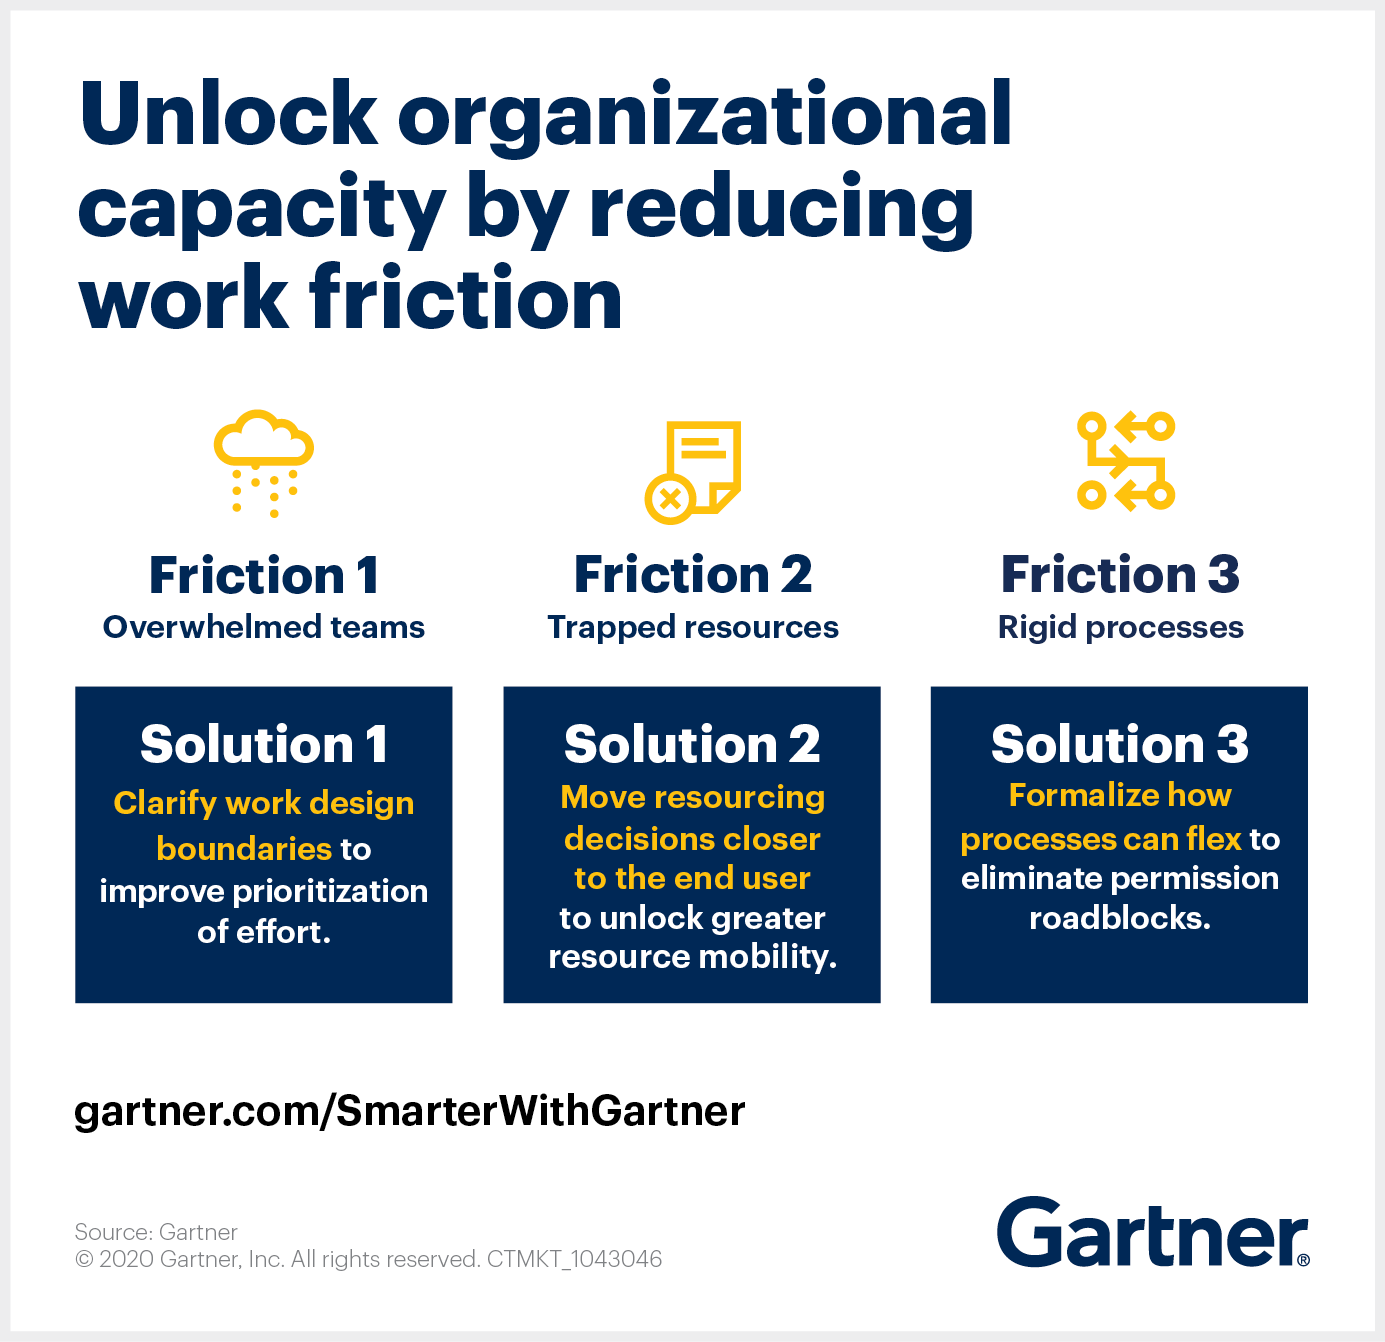 Gartner offers solutions for three major work design problems that keep employees from being responsive and productive.